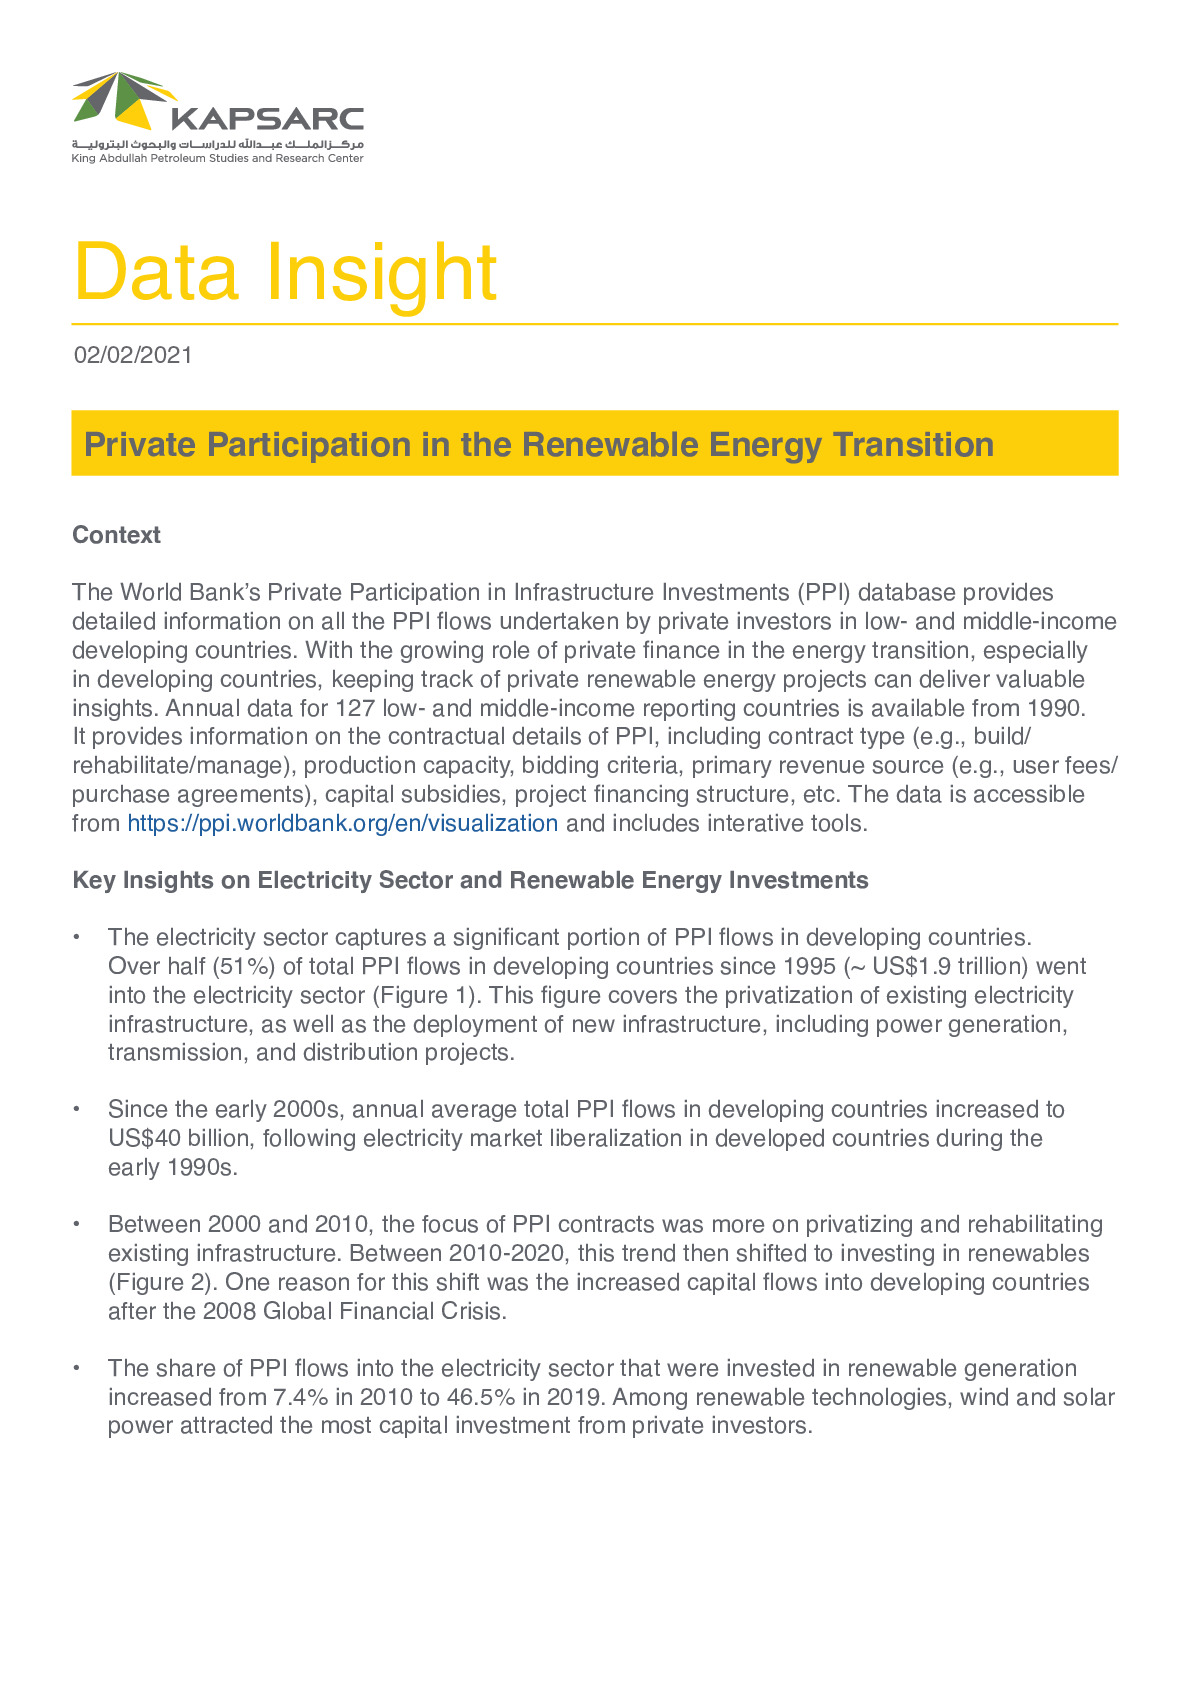 Private Participation in the Renewable Energy Transition